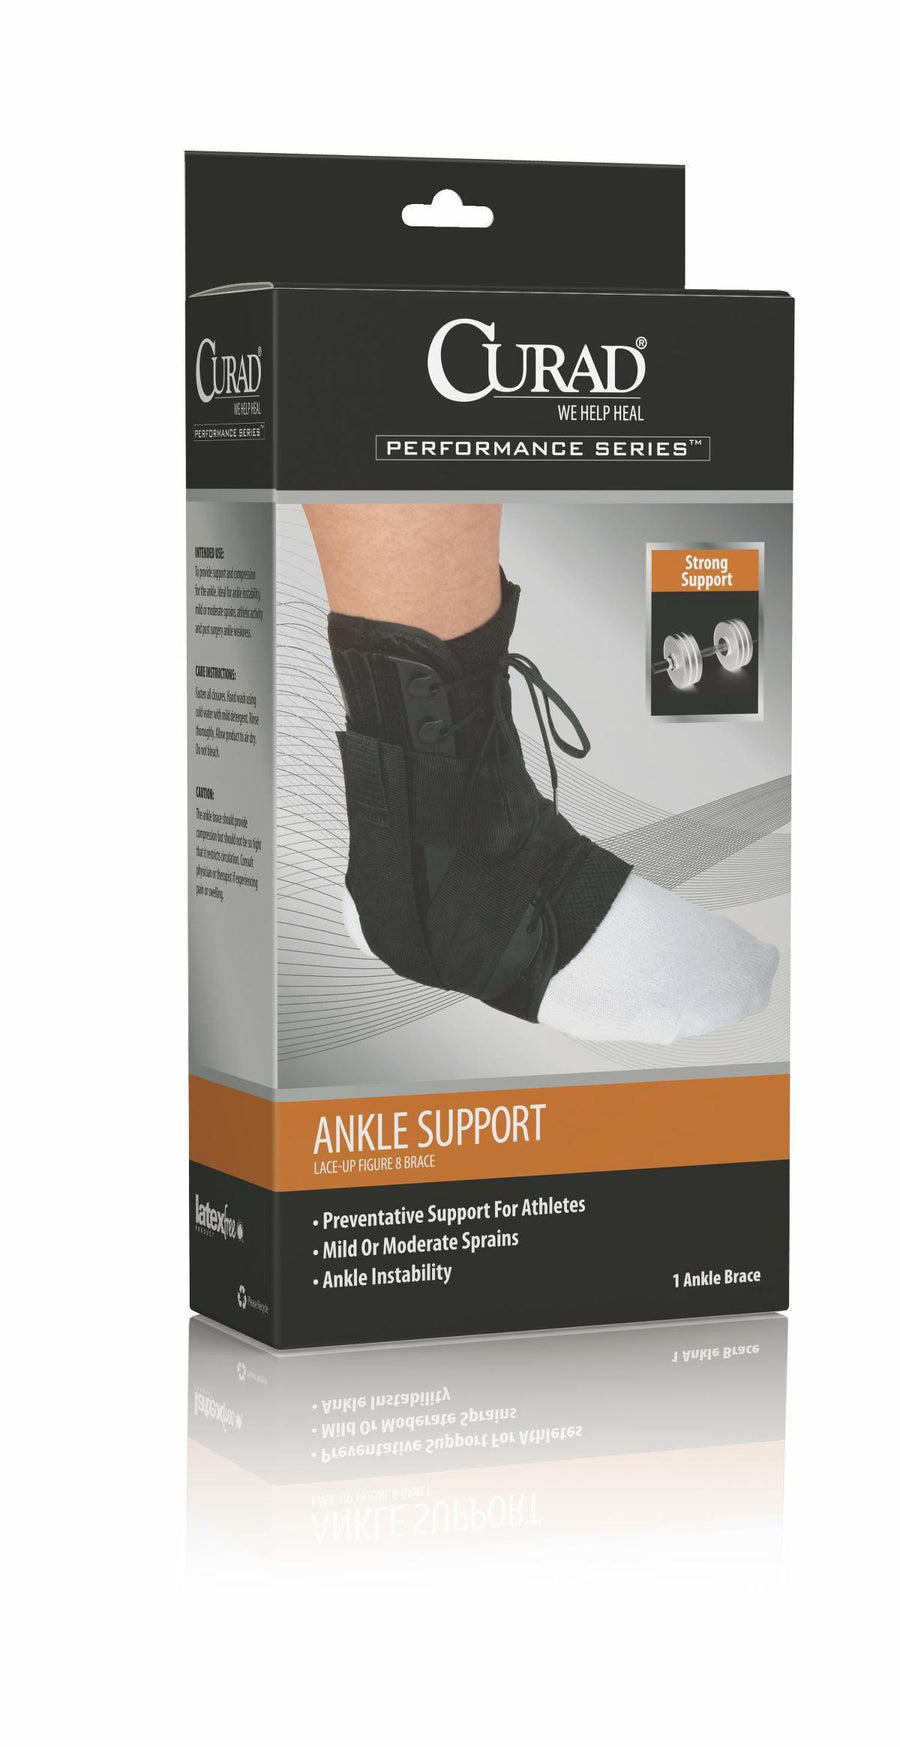 CURAD Lace-Up Ankle Splints,Black,Large, Case of 4